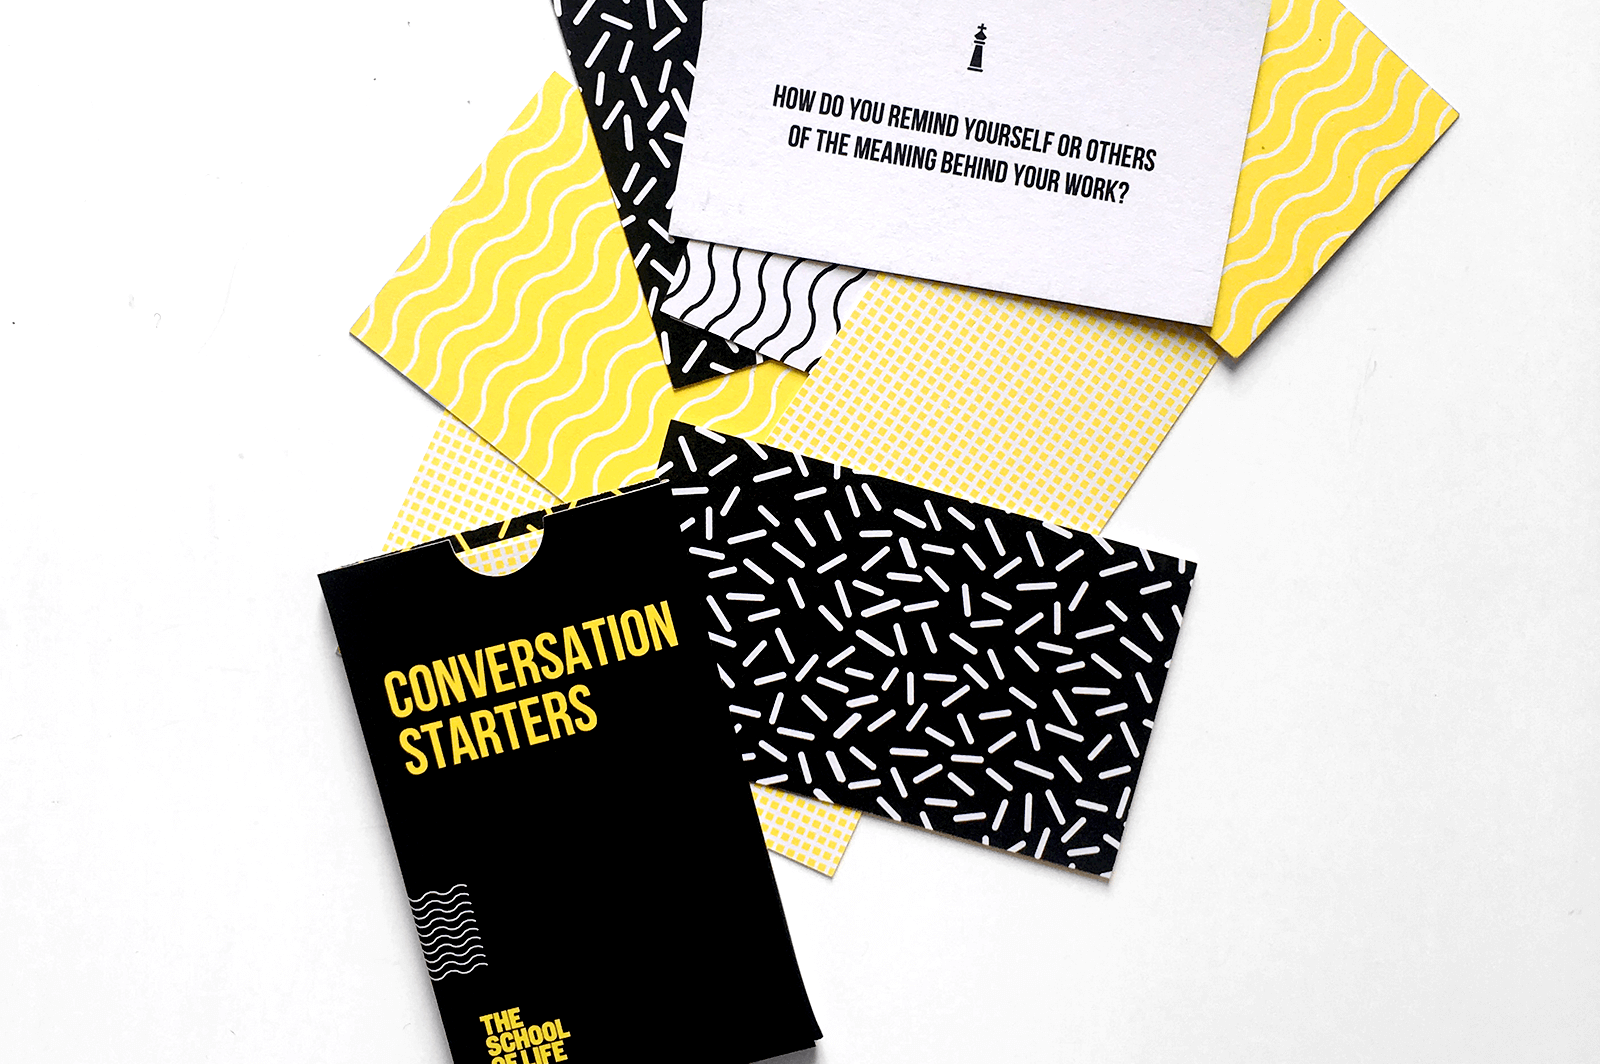 Conversation starter cards from The School of Life